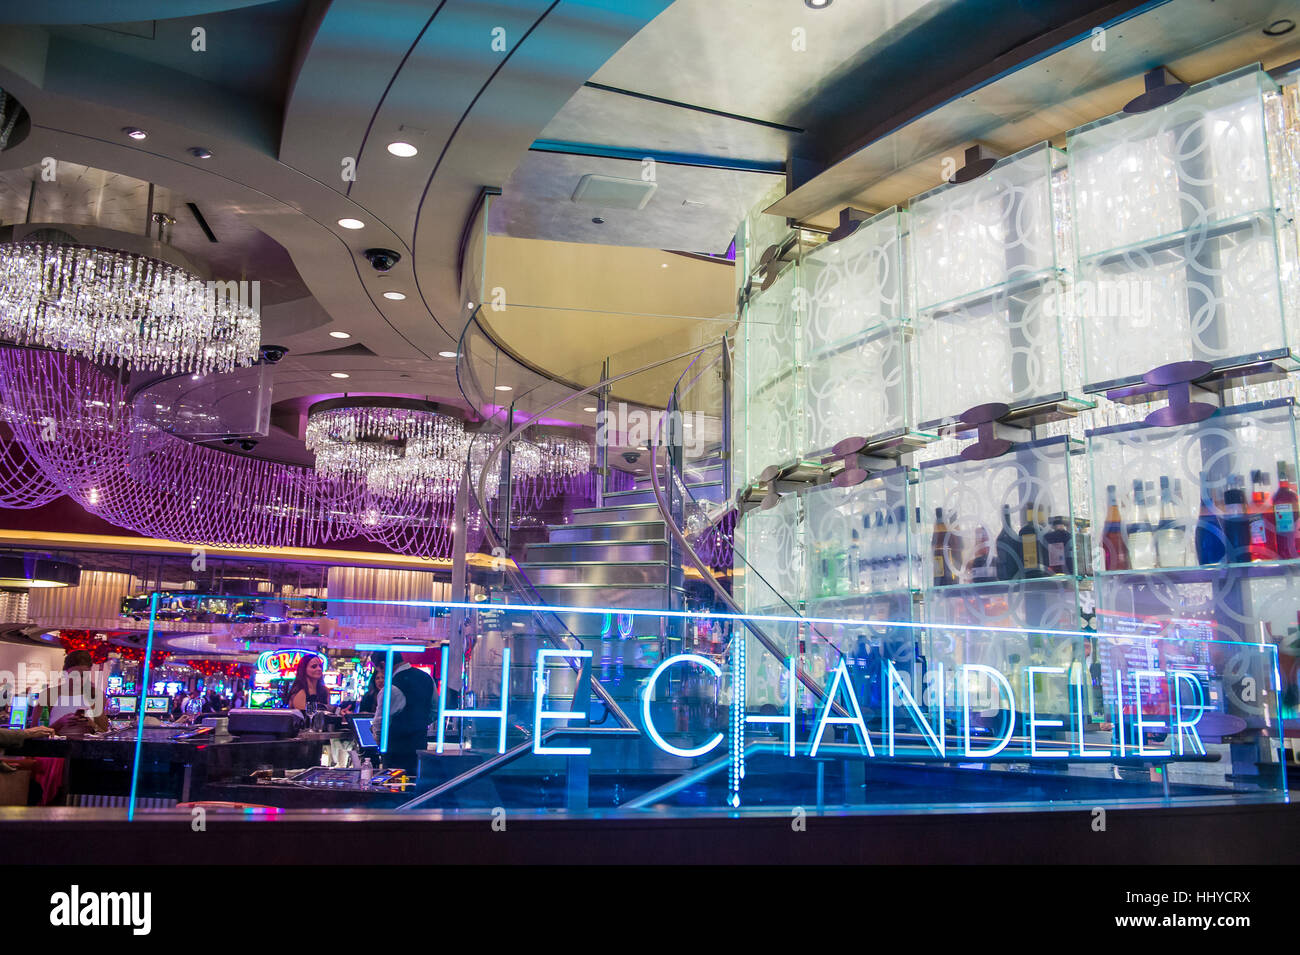 Las vegas oct 05 the chandelier bar at the cosmopolitan hotel las vegas oct 05 the chandelier bar at the cosmopolitan hotel casino in las vegas on october 05 2016 this tri level chandelier encases the hote arubaitofo Image collections